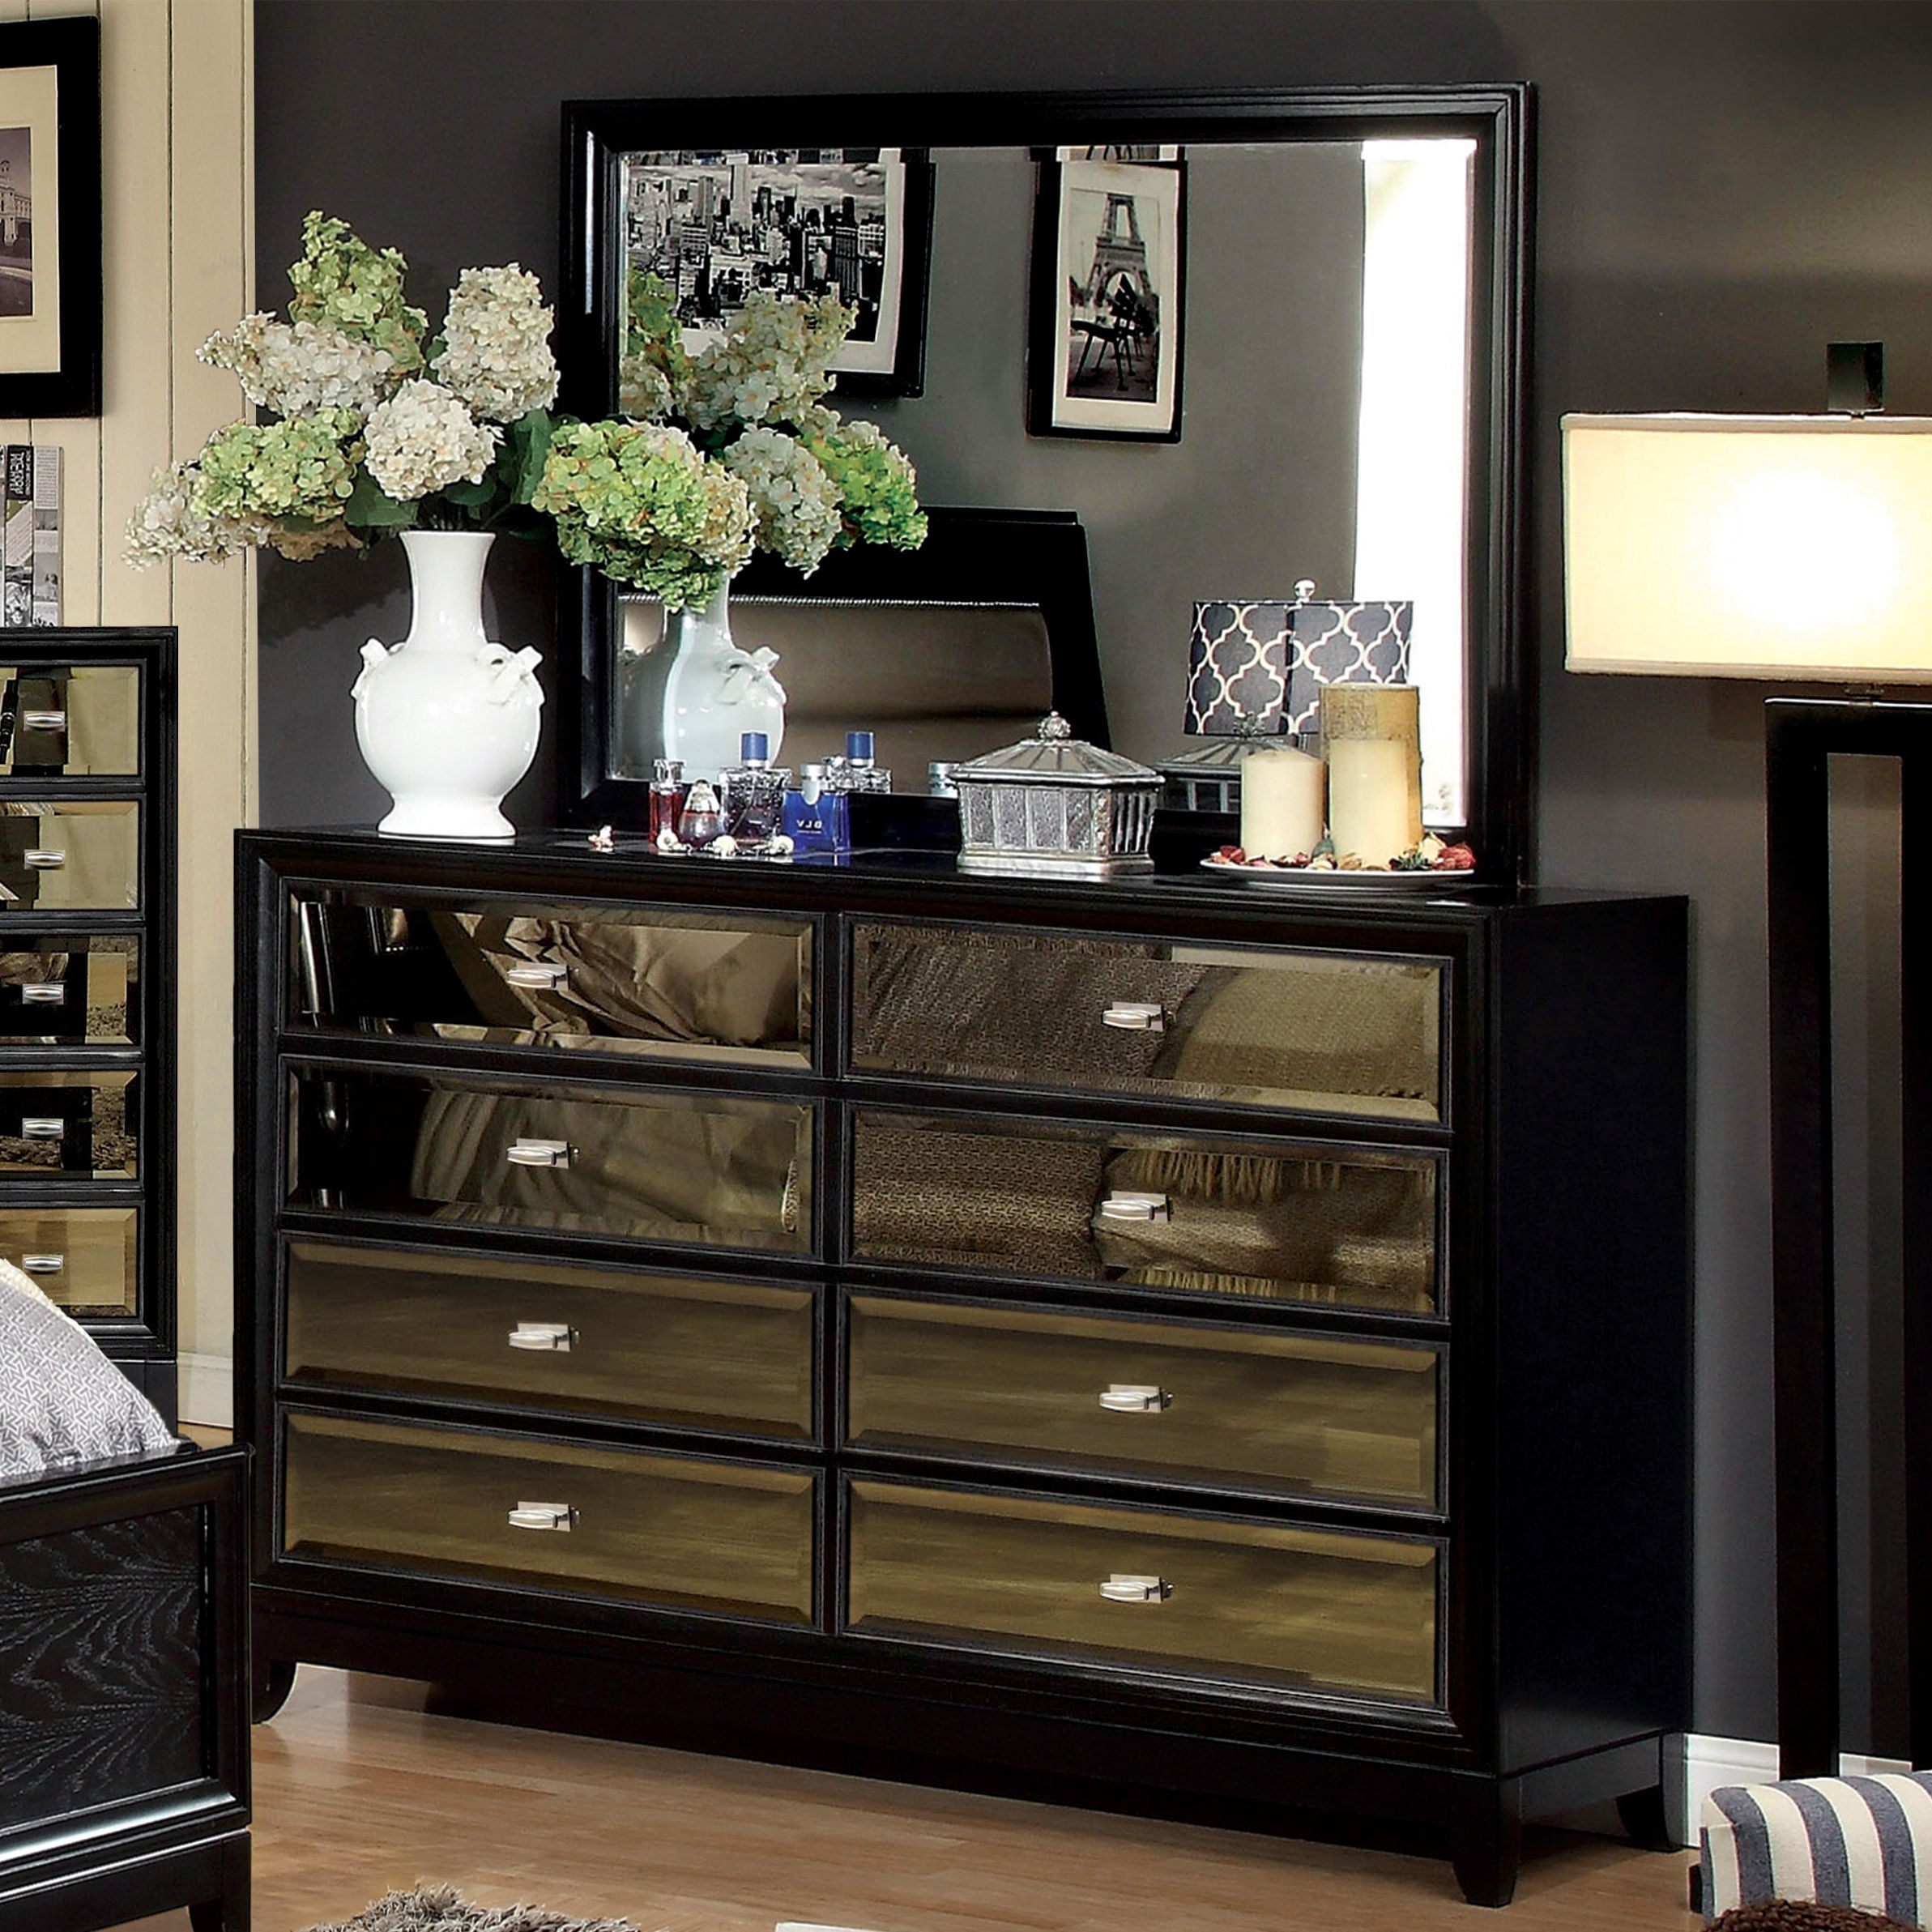 Furniture of america 2 piece dresser and mirror set black size 6 drawer